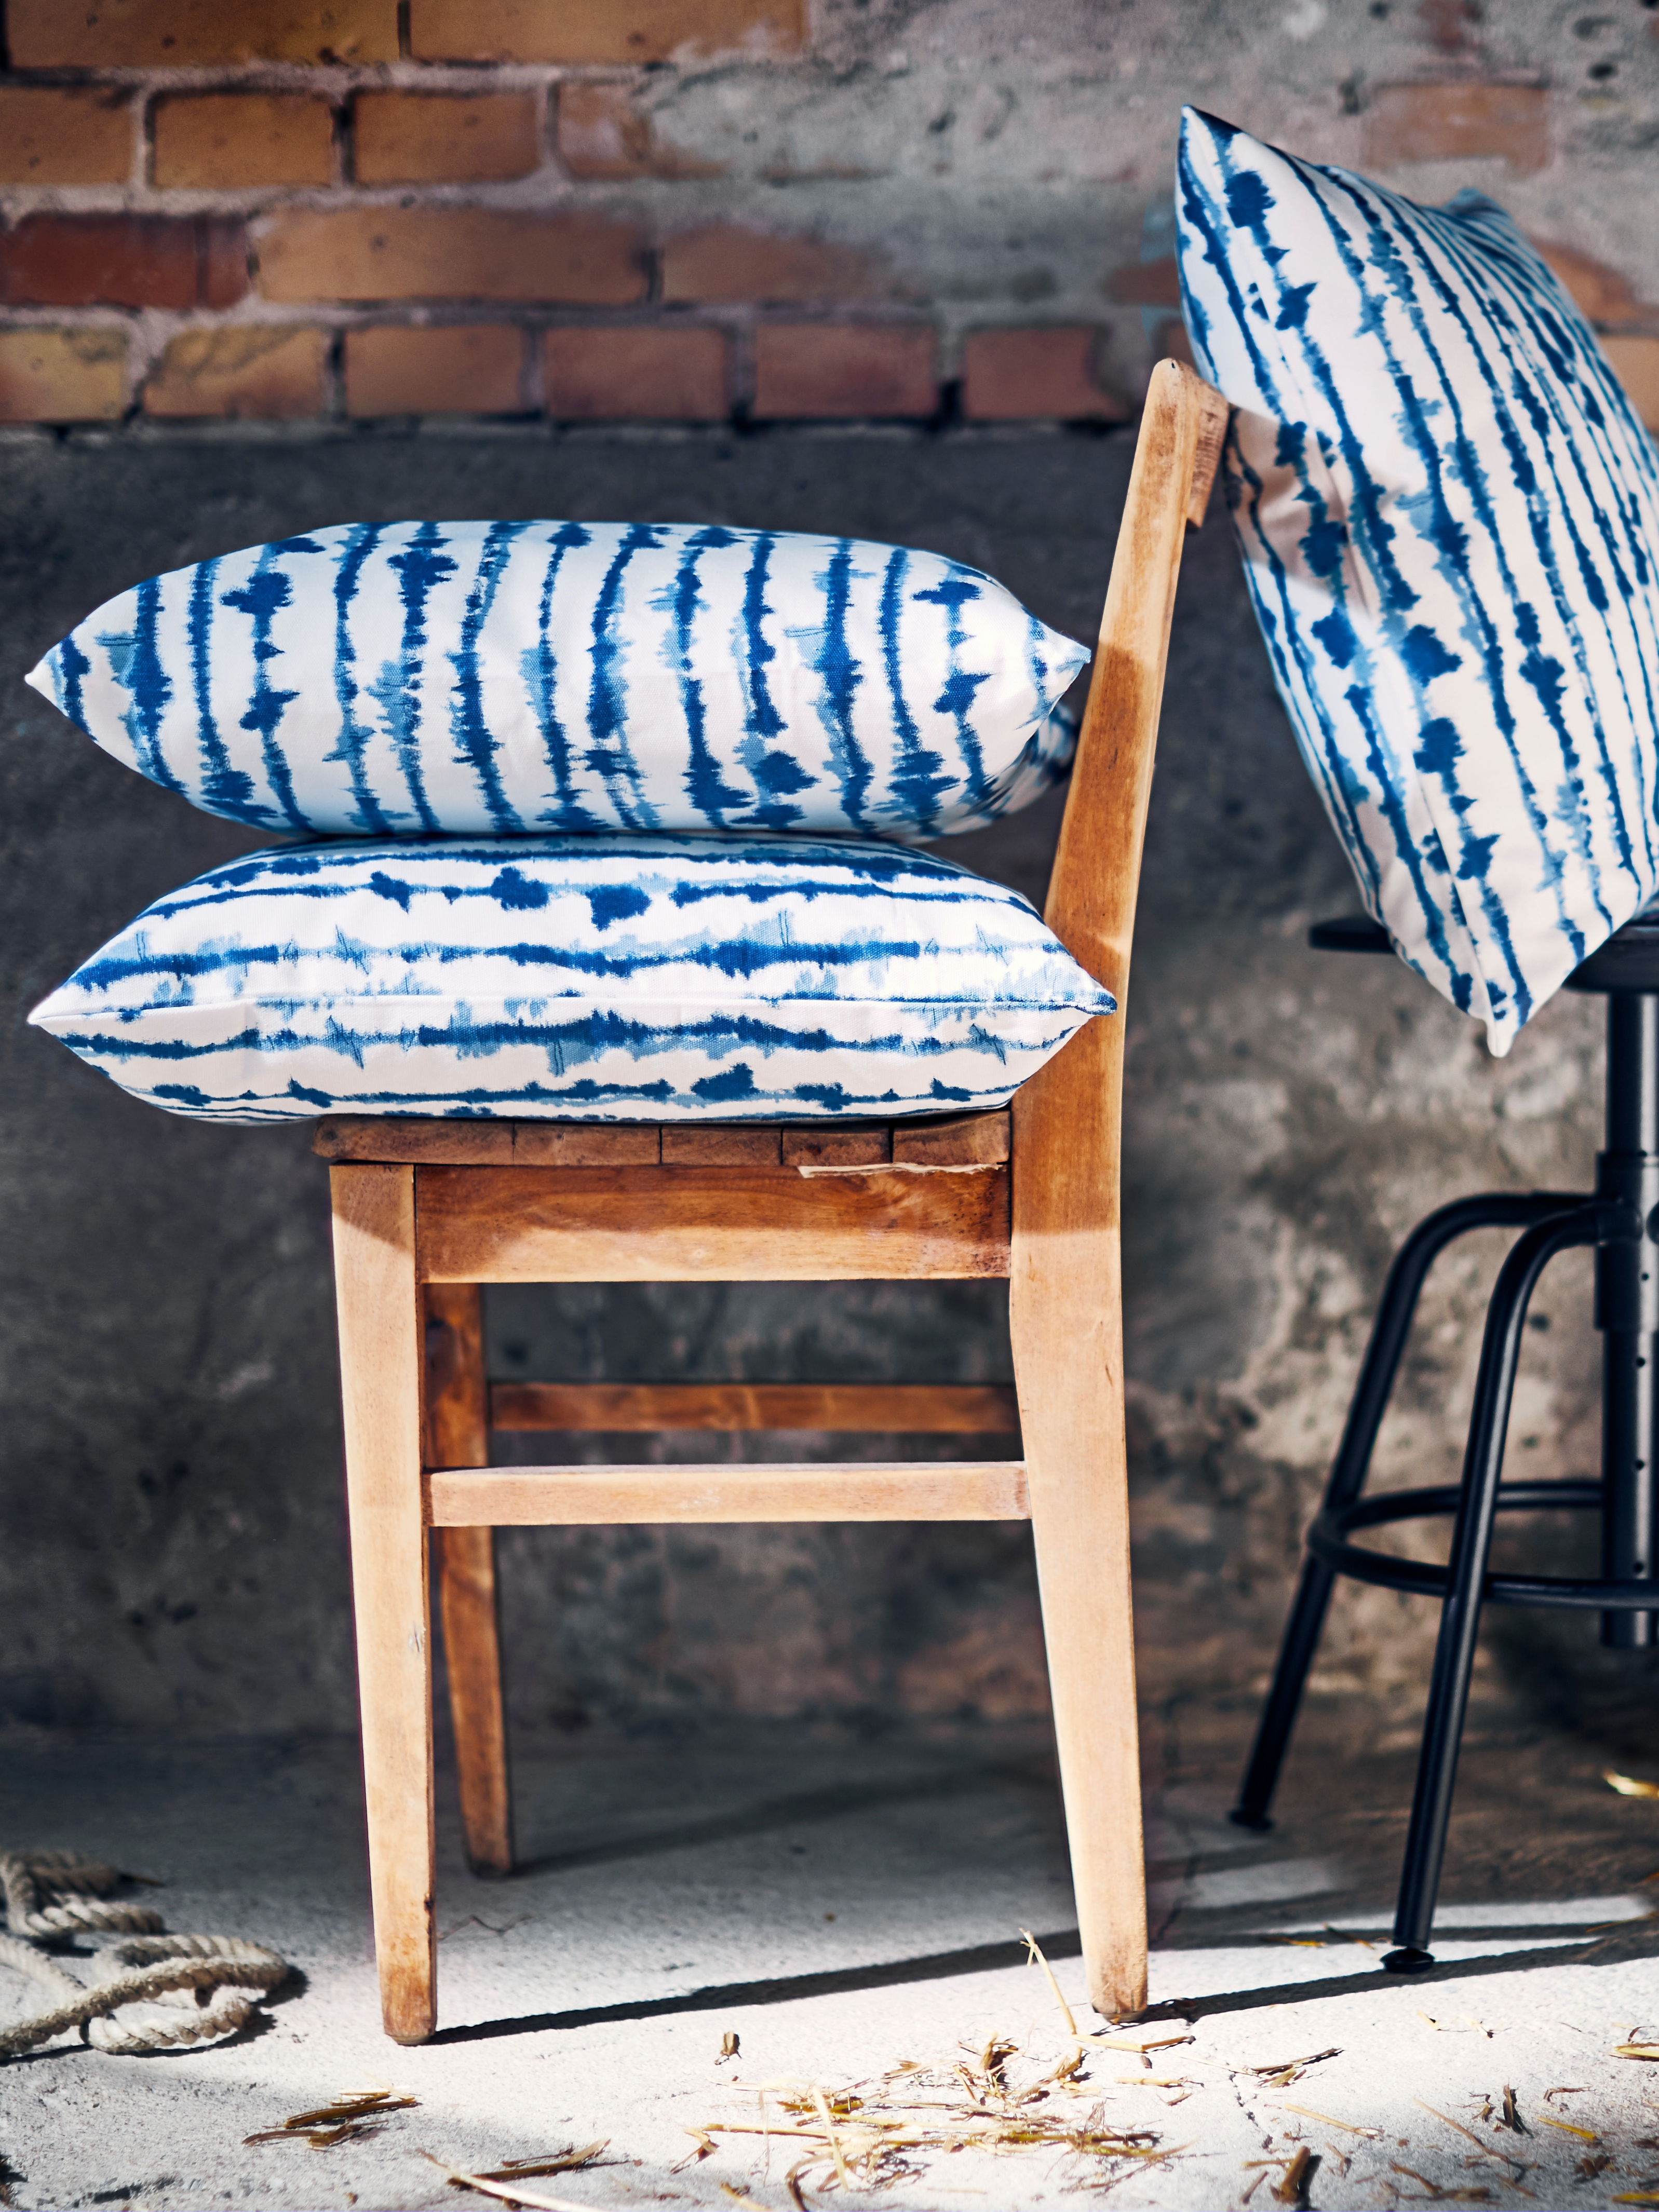 White/blue STRIMSPORRE cotton cushion covers on top of a vintage chair and a barstool.